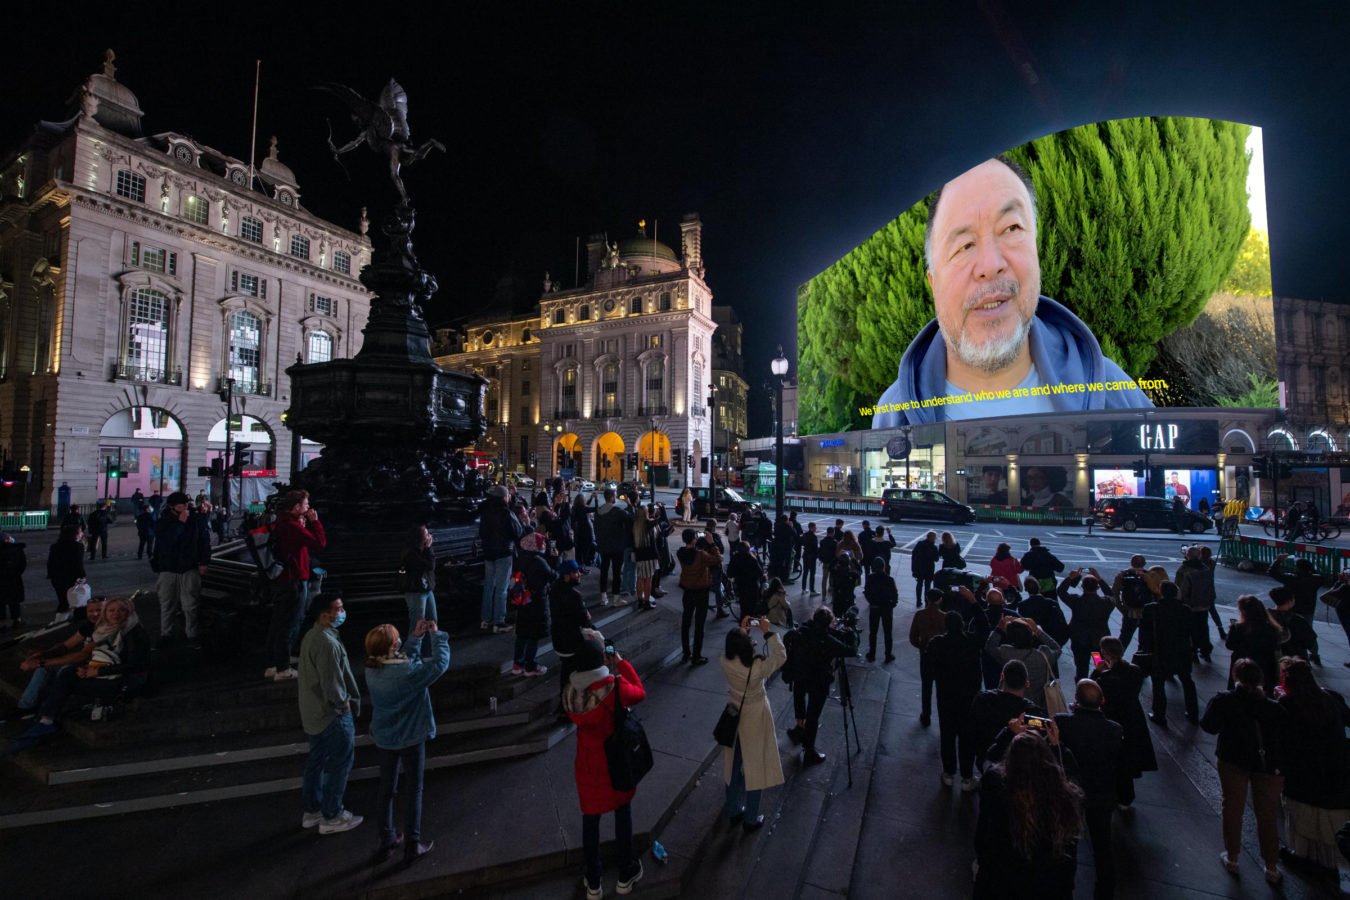 Ai Weiwei's latest art installation will give you a prize if you get the answer right